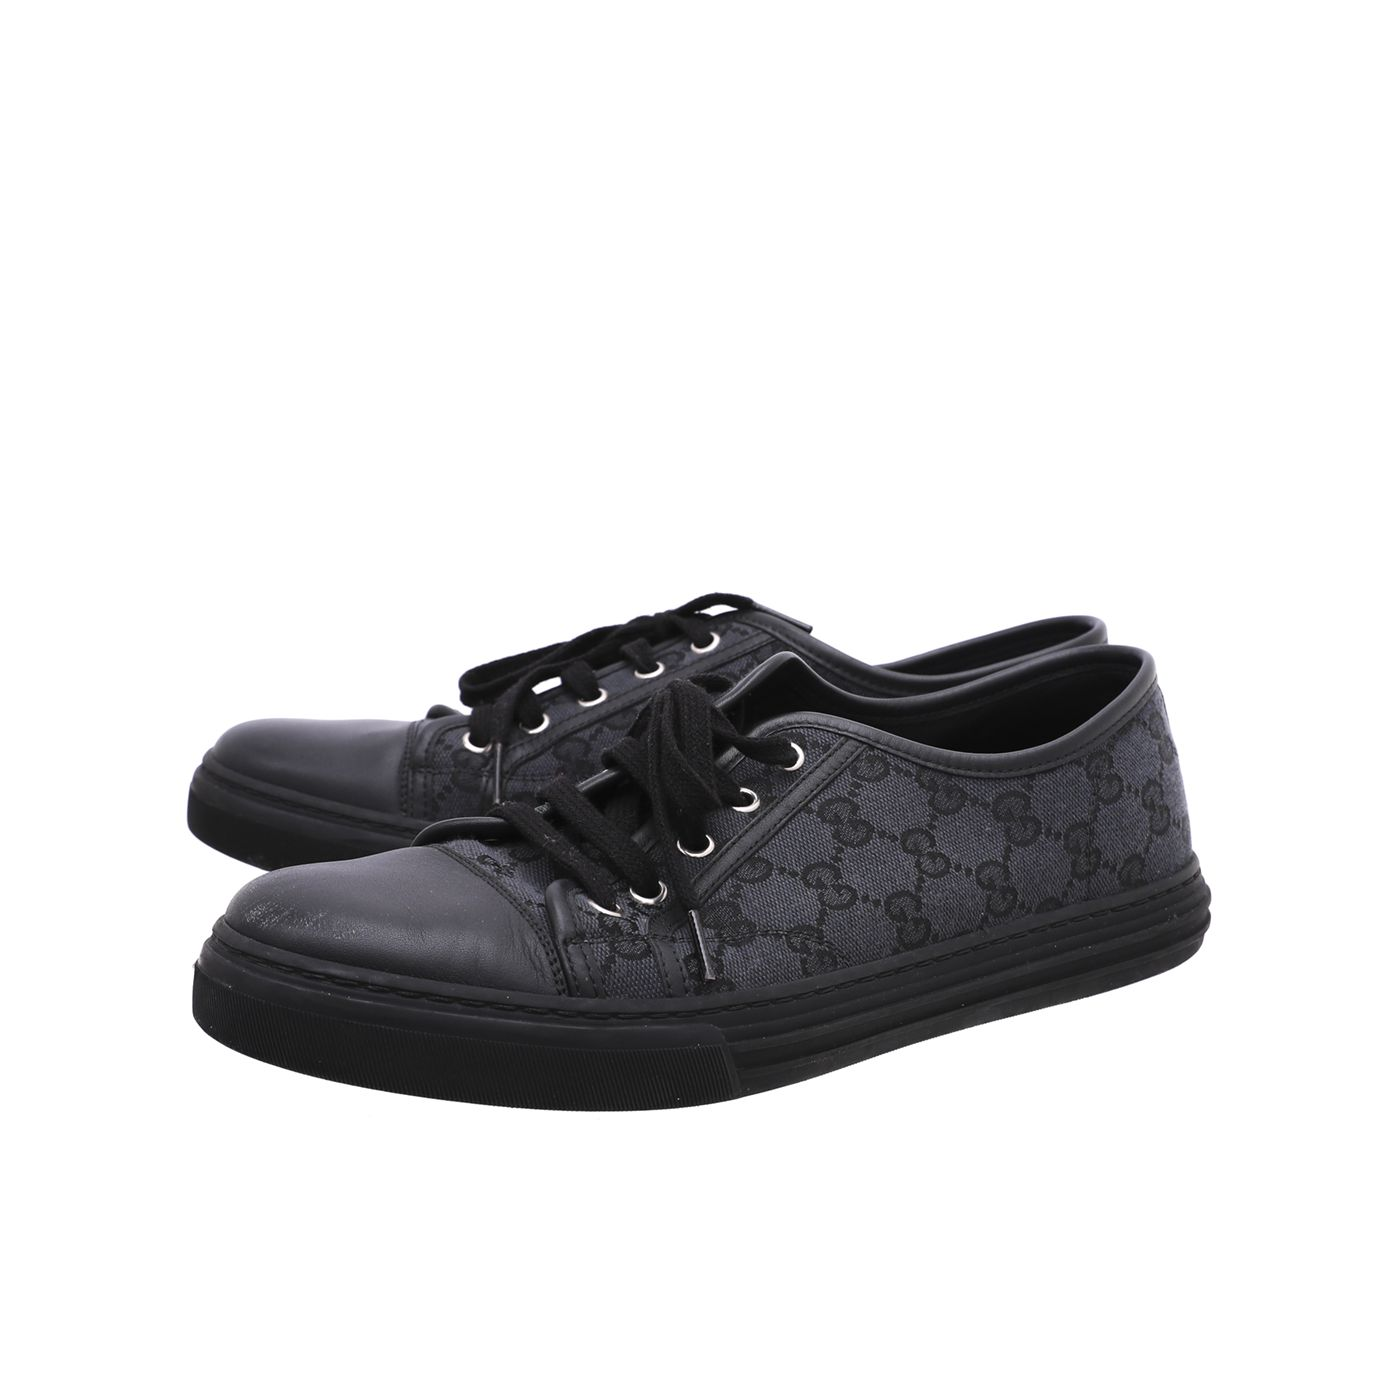 Gucci Black GG Low Top Sneakers 42